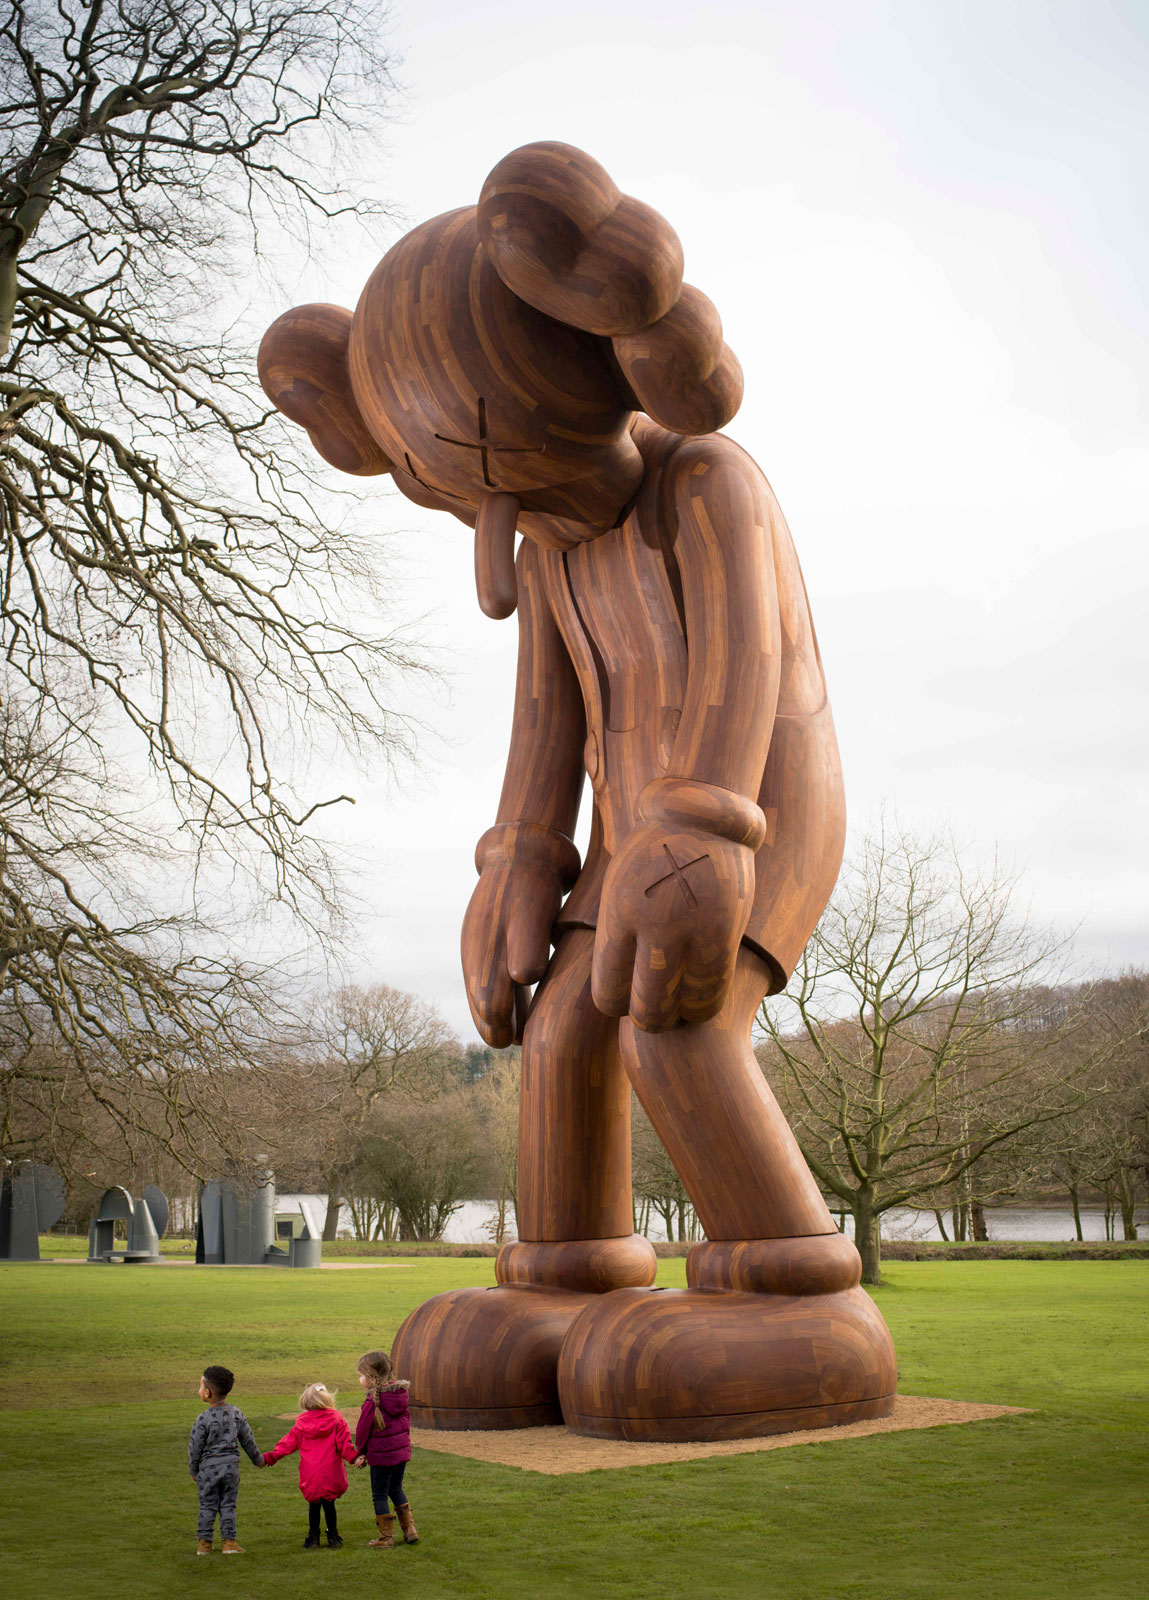 Small lie, 2013. Wood, 1000 x 464 x 427cm. Courtesy the artist and Galerie Perrotin. Photo © Jonty Wilde.